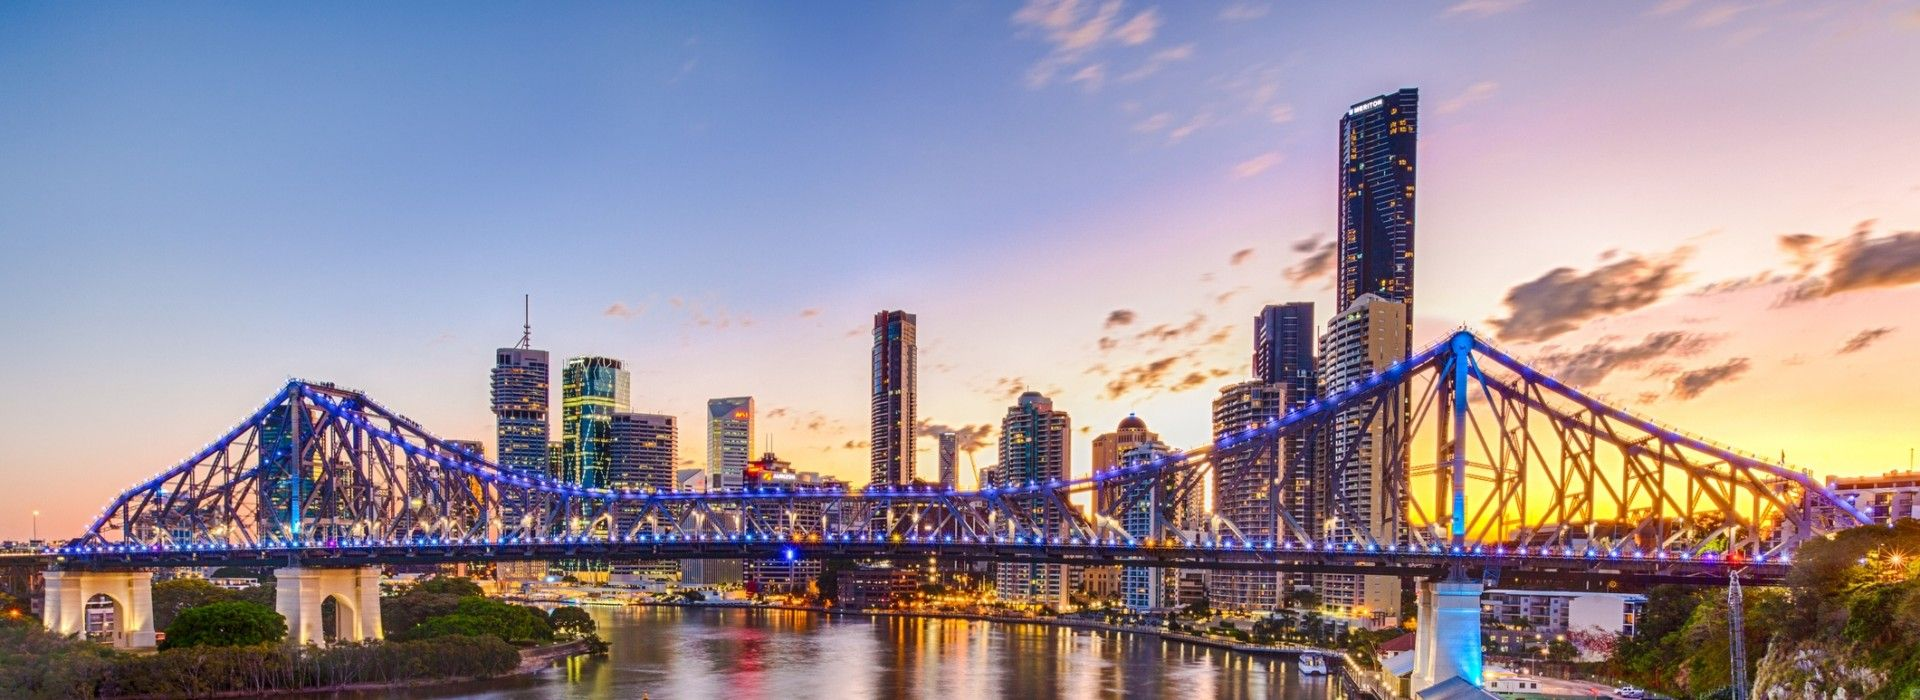 Brisbane is one of Australia's fastest growing cities.